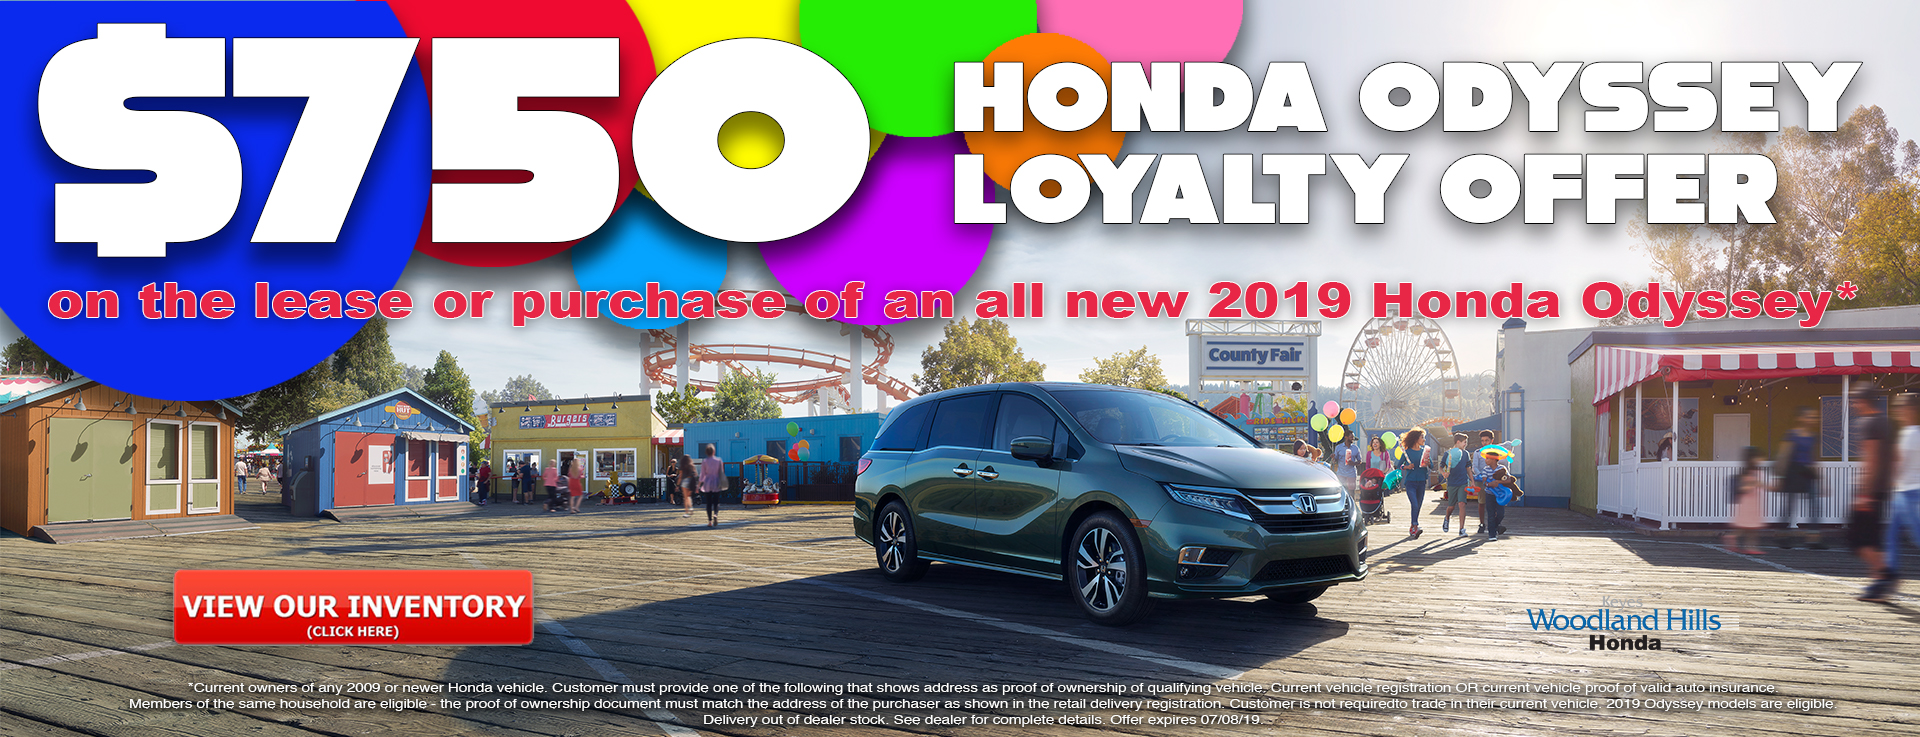 Honda Odyssey Loyalty Offer